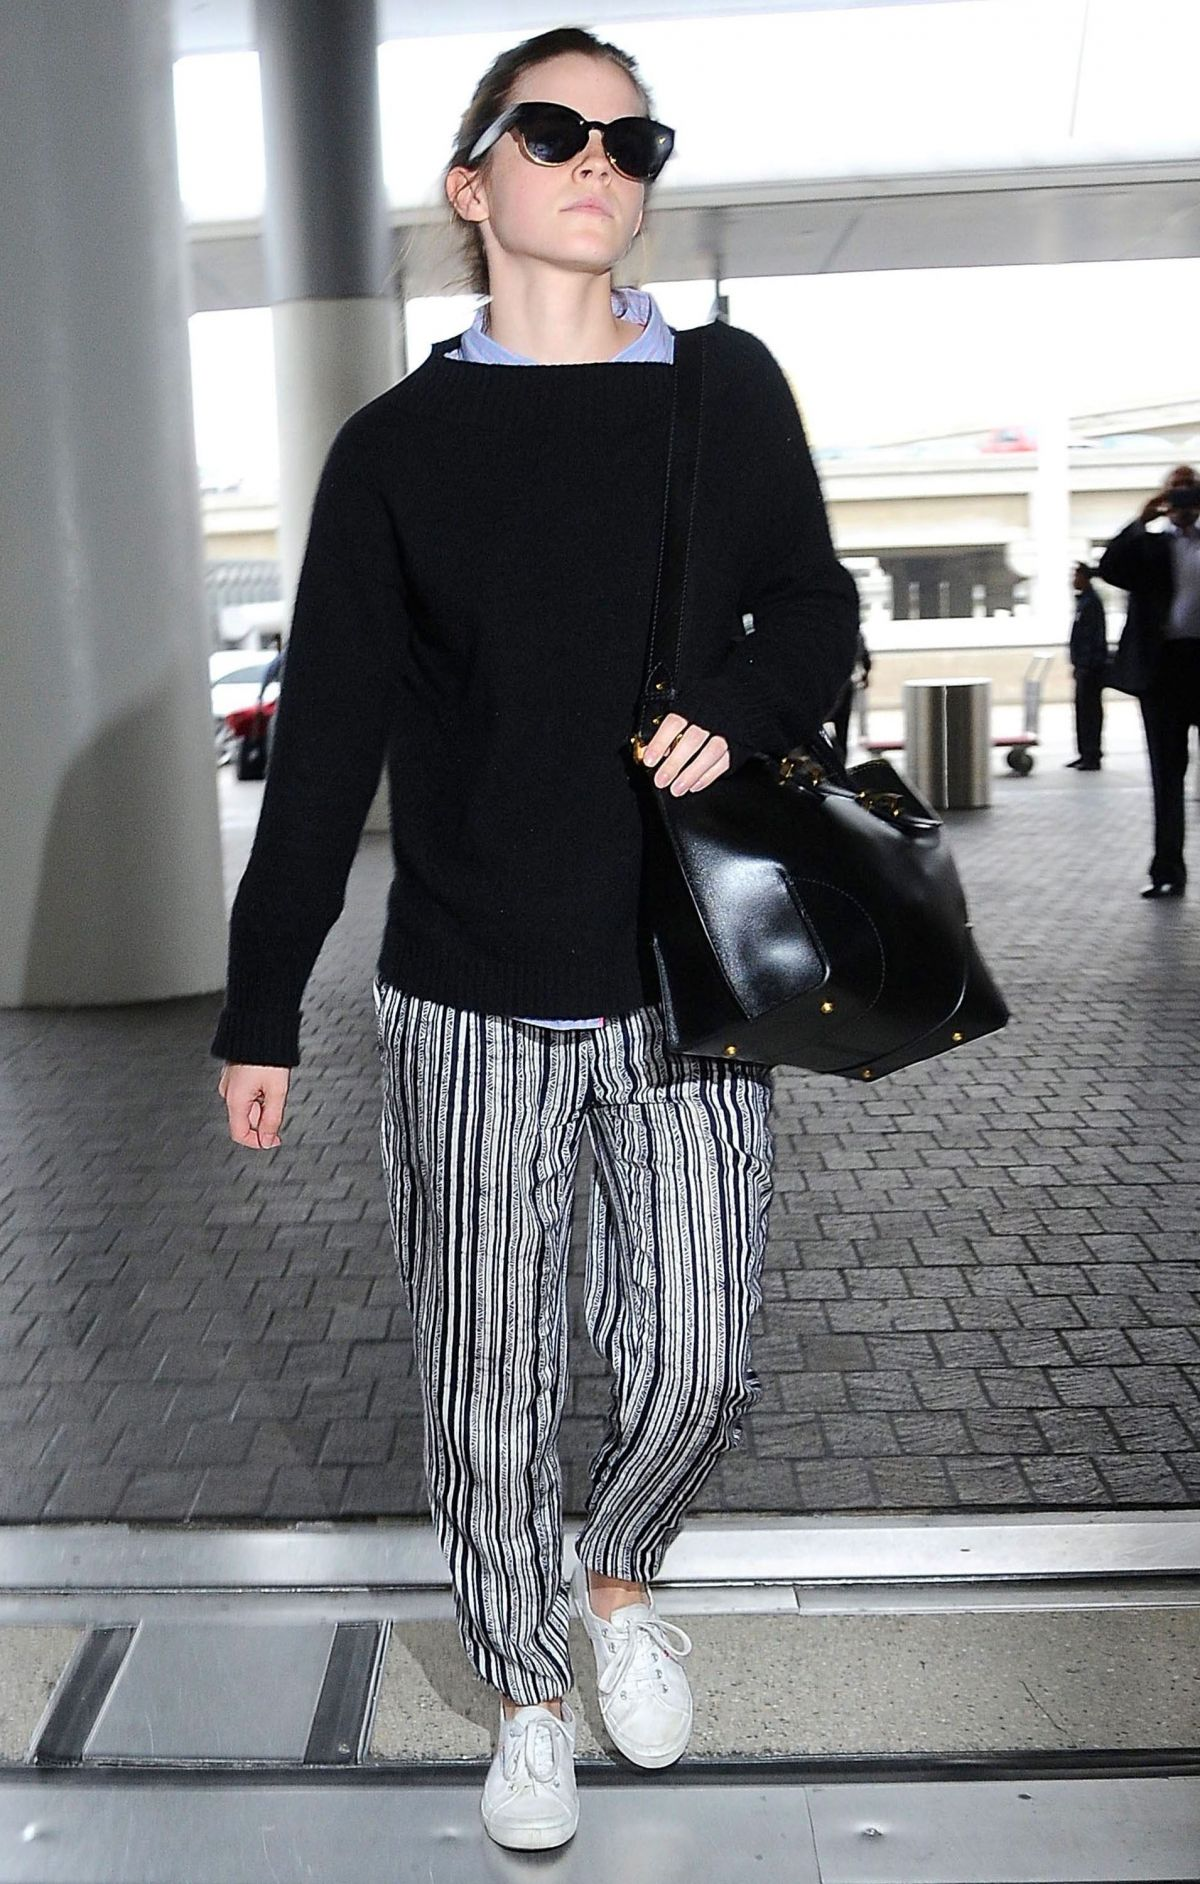 EMMA WATSON at LAX Airport in Los Angeles 04/25/2015